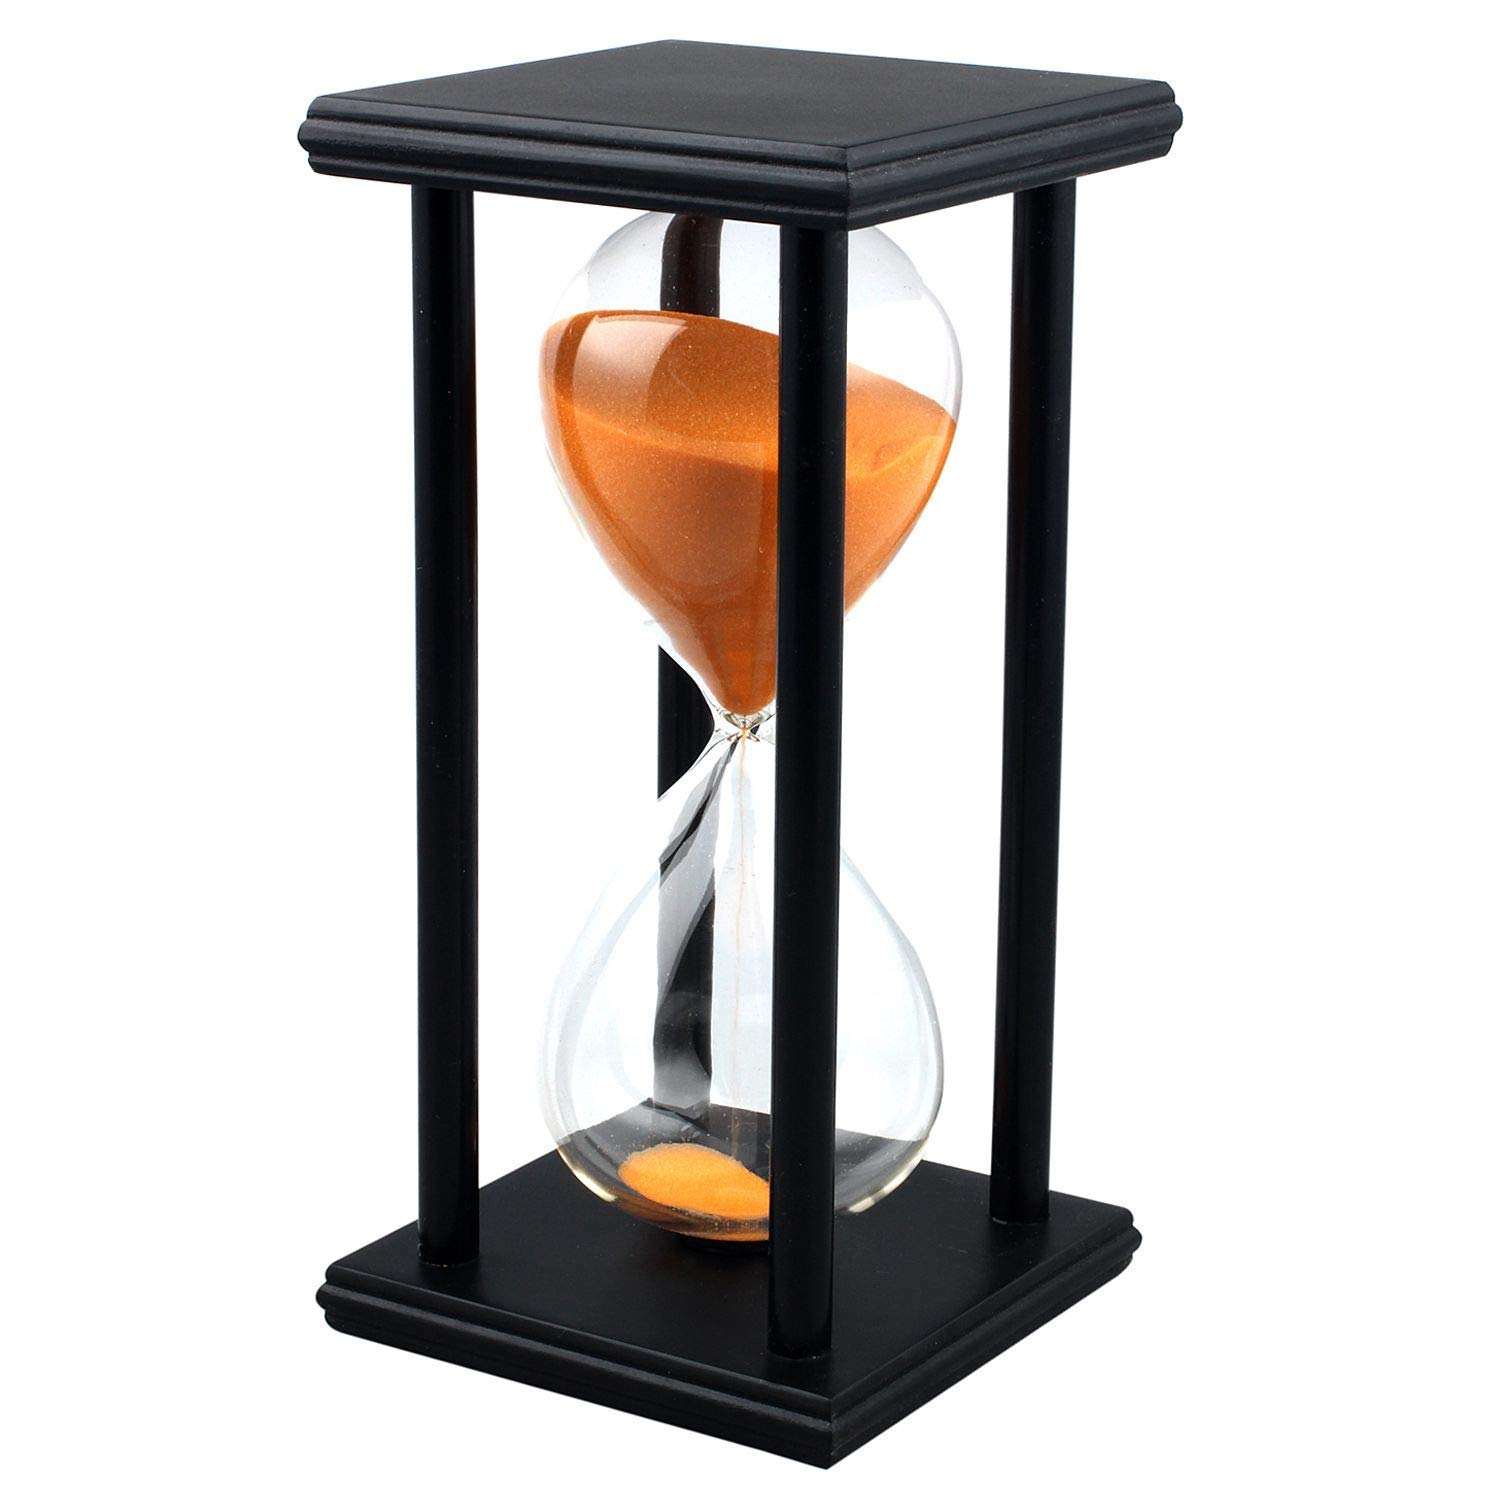 60 Minutes Hourglass Timer Creative Gifts Room Decor Hourglass (black frame orange sand)